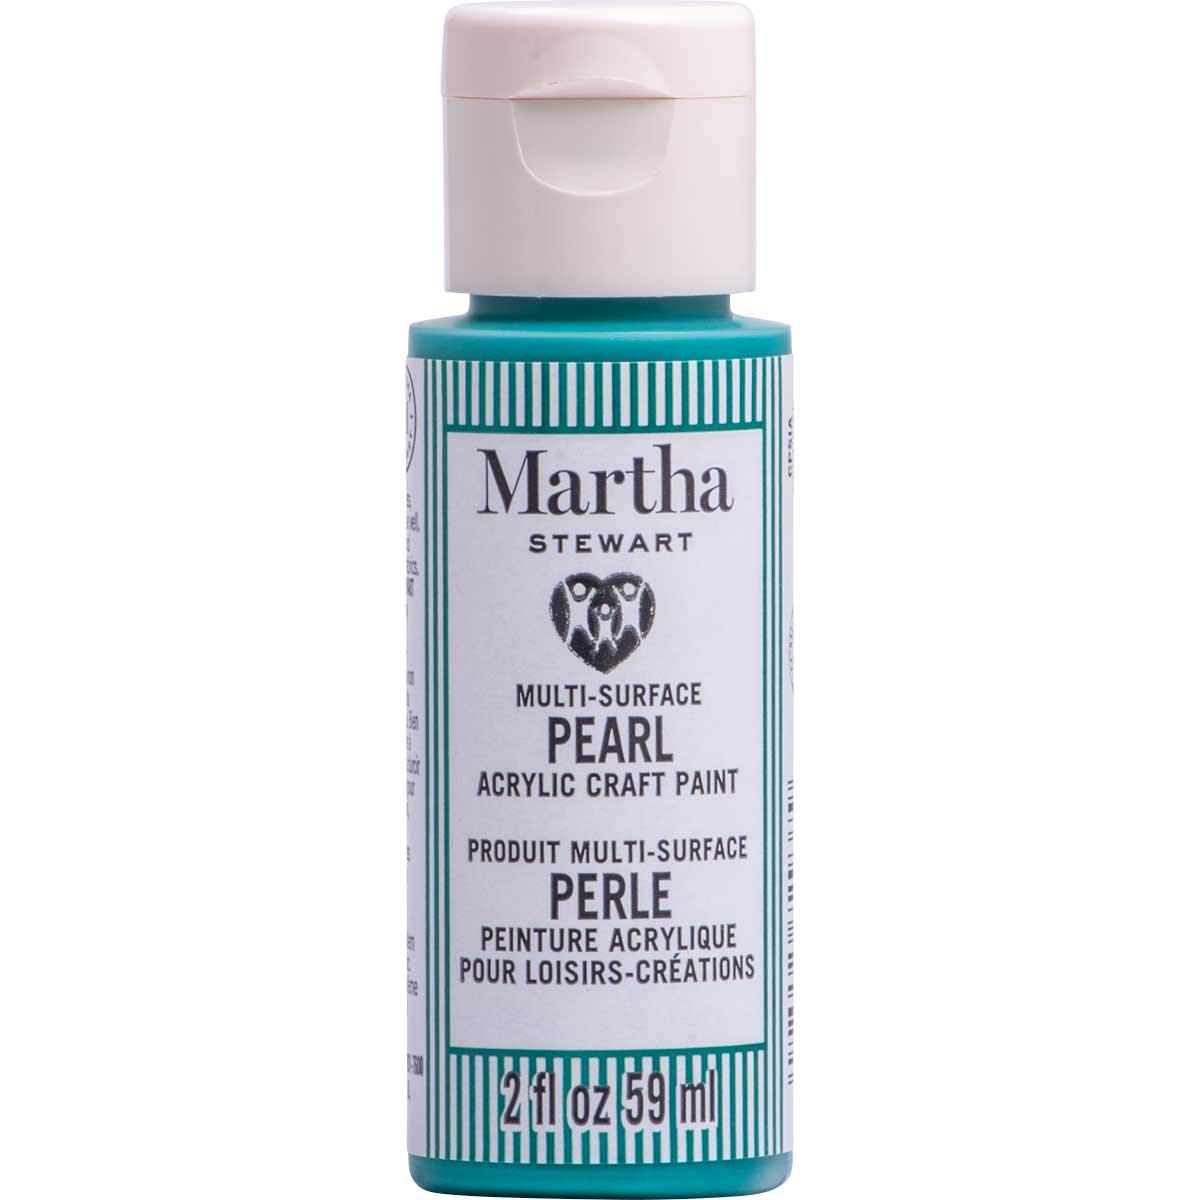 Martha Stewart Crafts 72937 Family Friendly Multi-Surface Pearl Acrylic Craft Paint, Oasis Teal